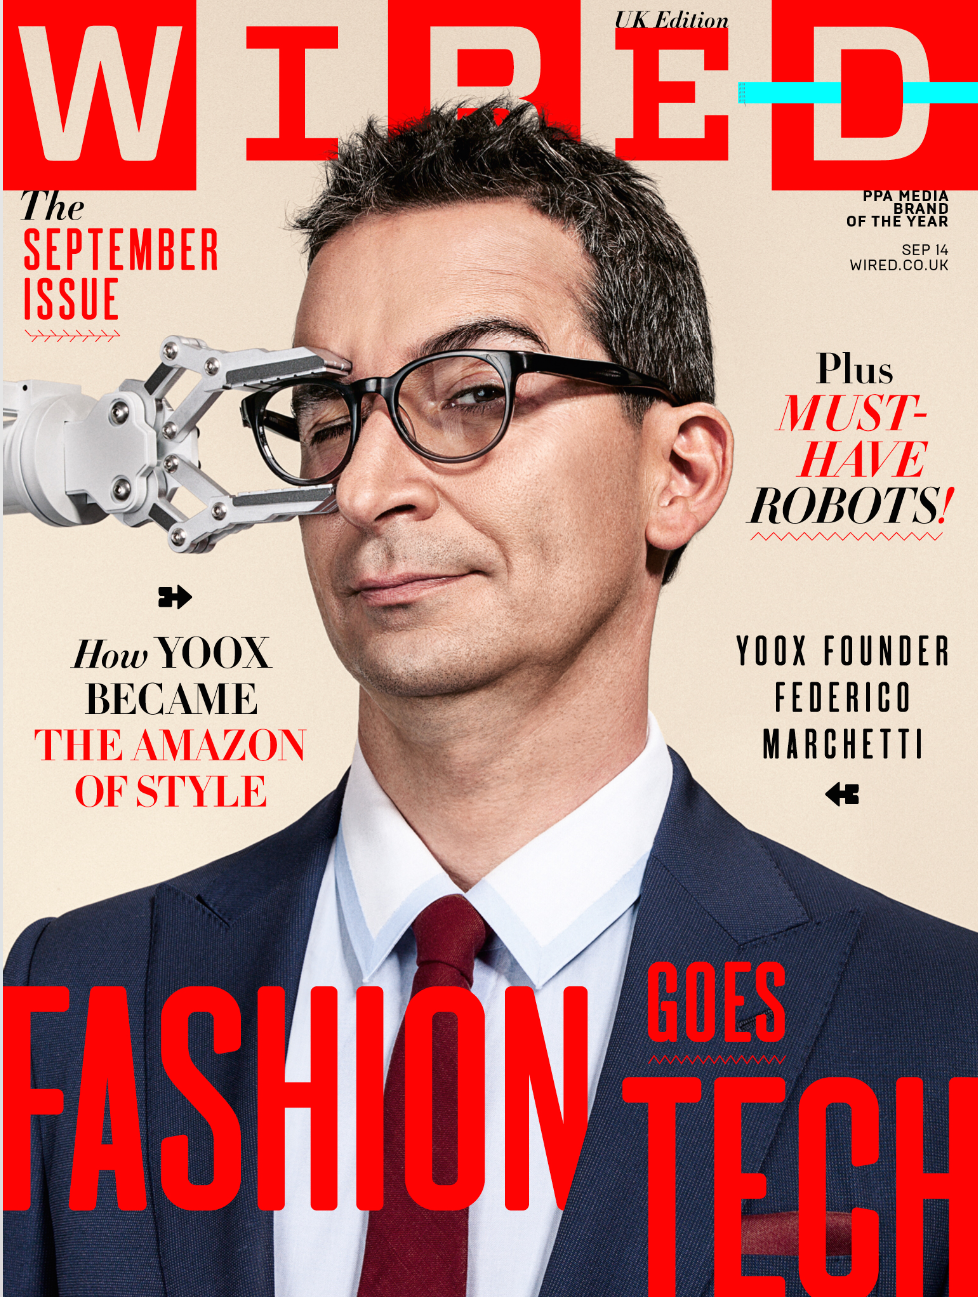 This week we chose Wired Sep 14 Issue for magazine cover of the week ...